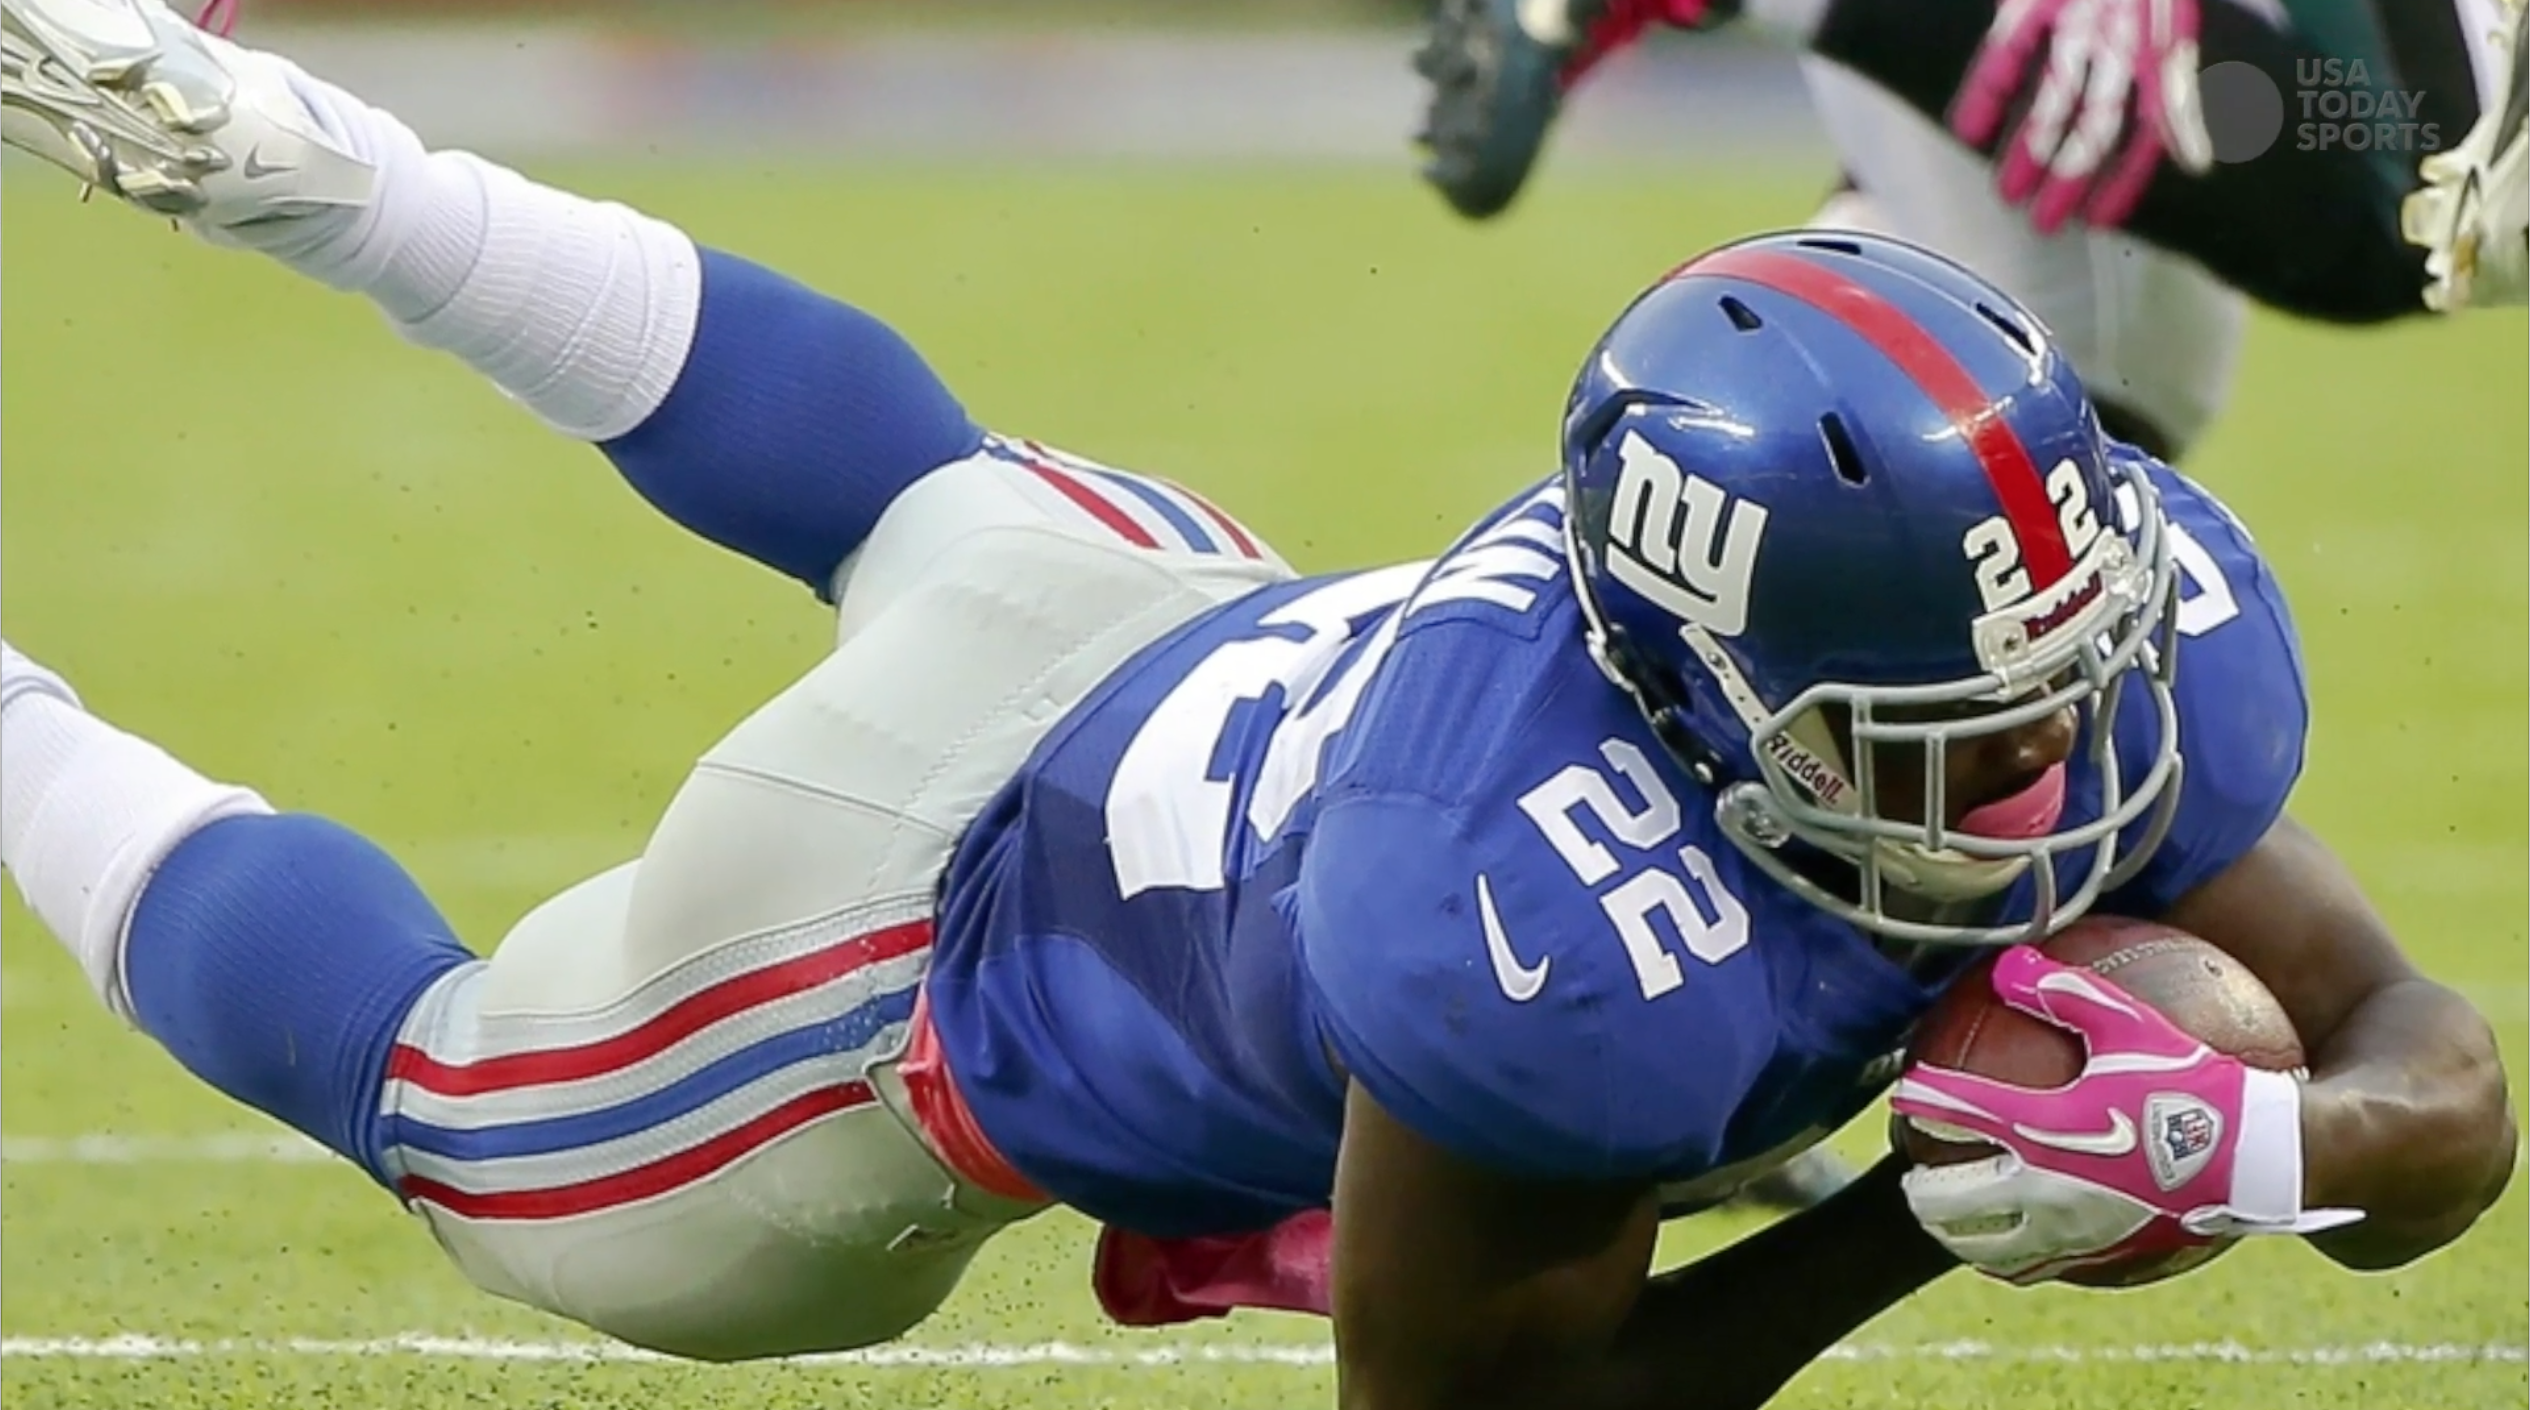 Giants camp battles: Wilson's injury gives other RBs looks